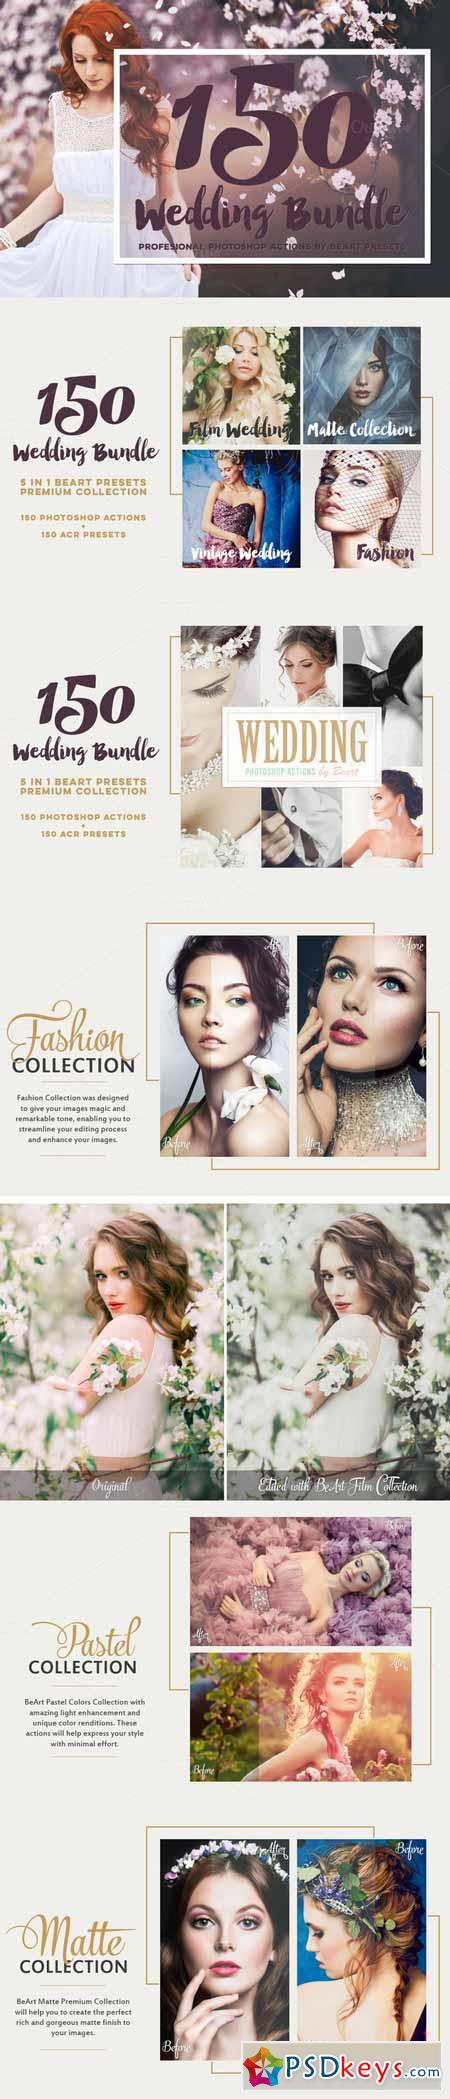 The Best Wedding Photoshop Actions 397418